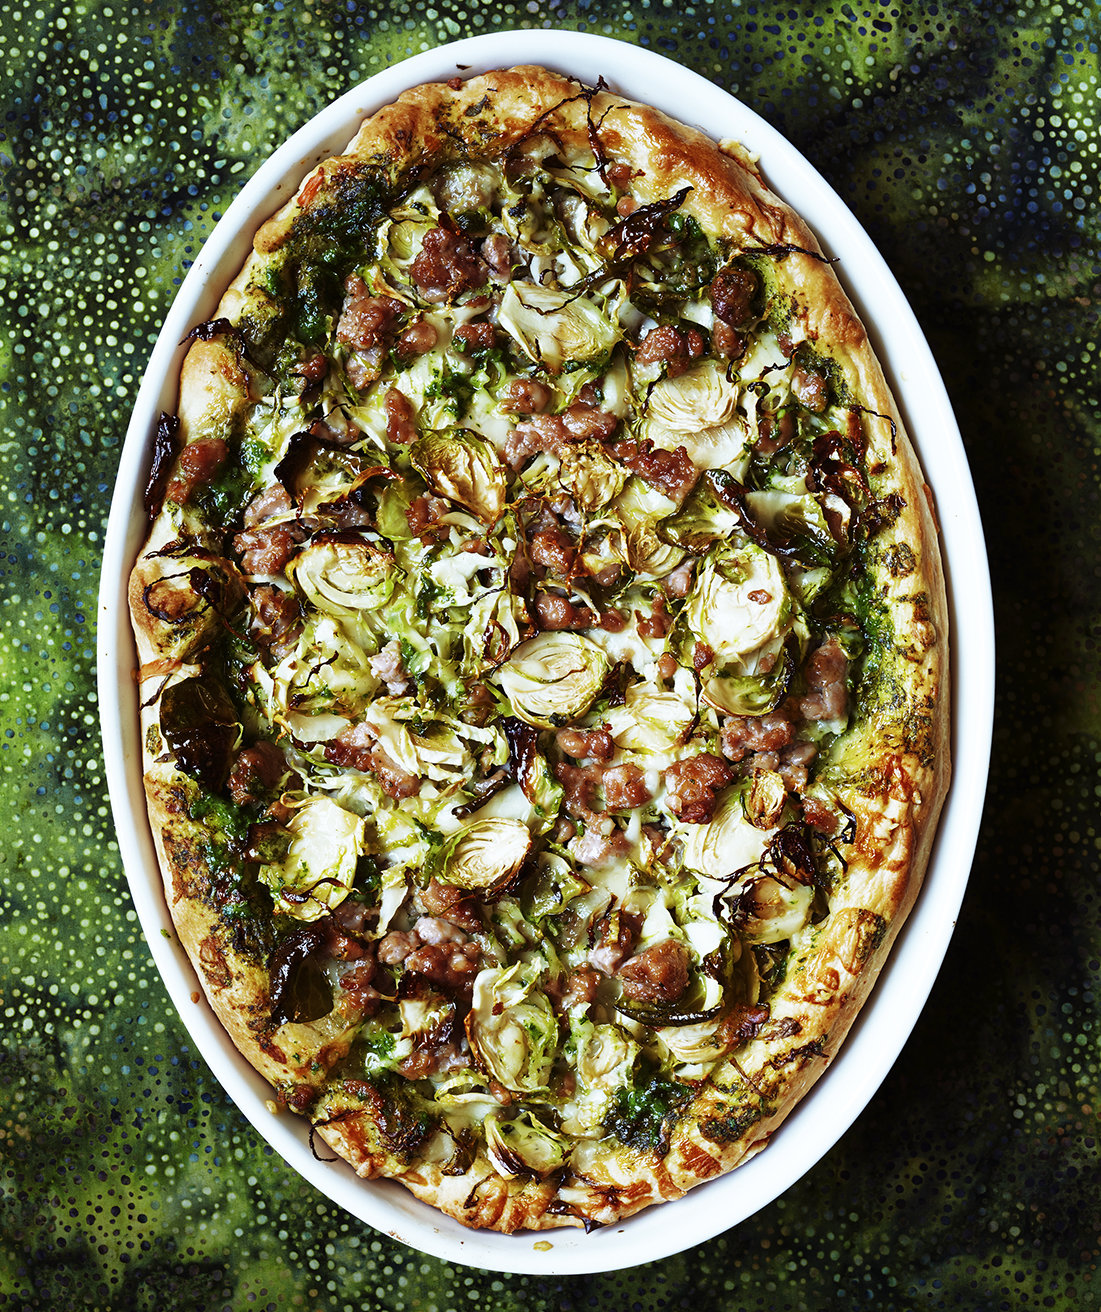 deep-dish-pizza-turkey-sausage-brussels-sprouts